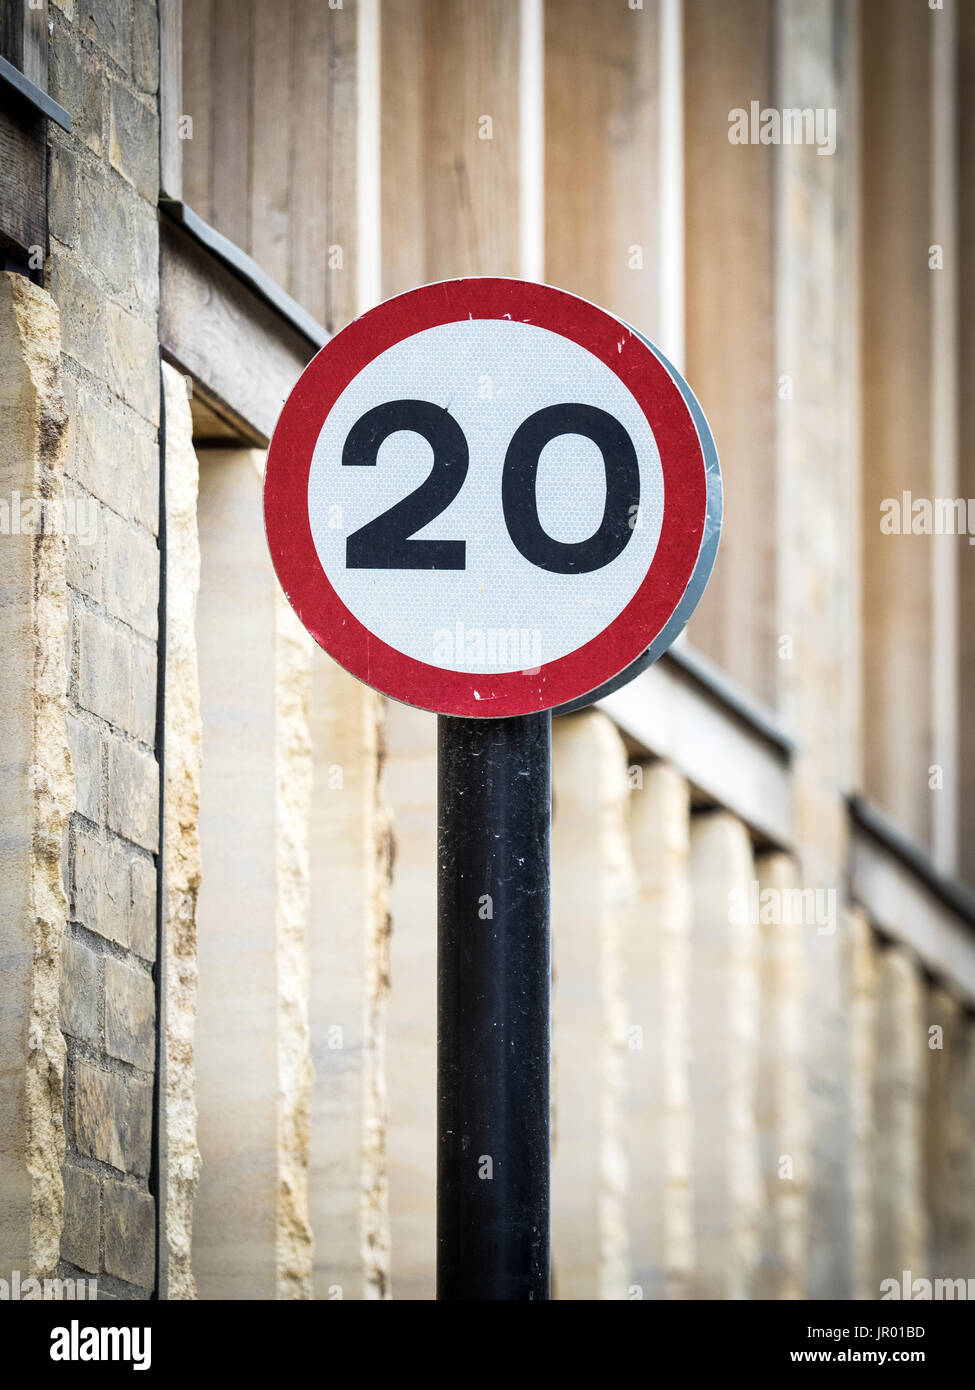 how to know the speed limit of a road